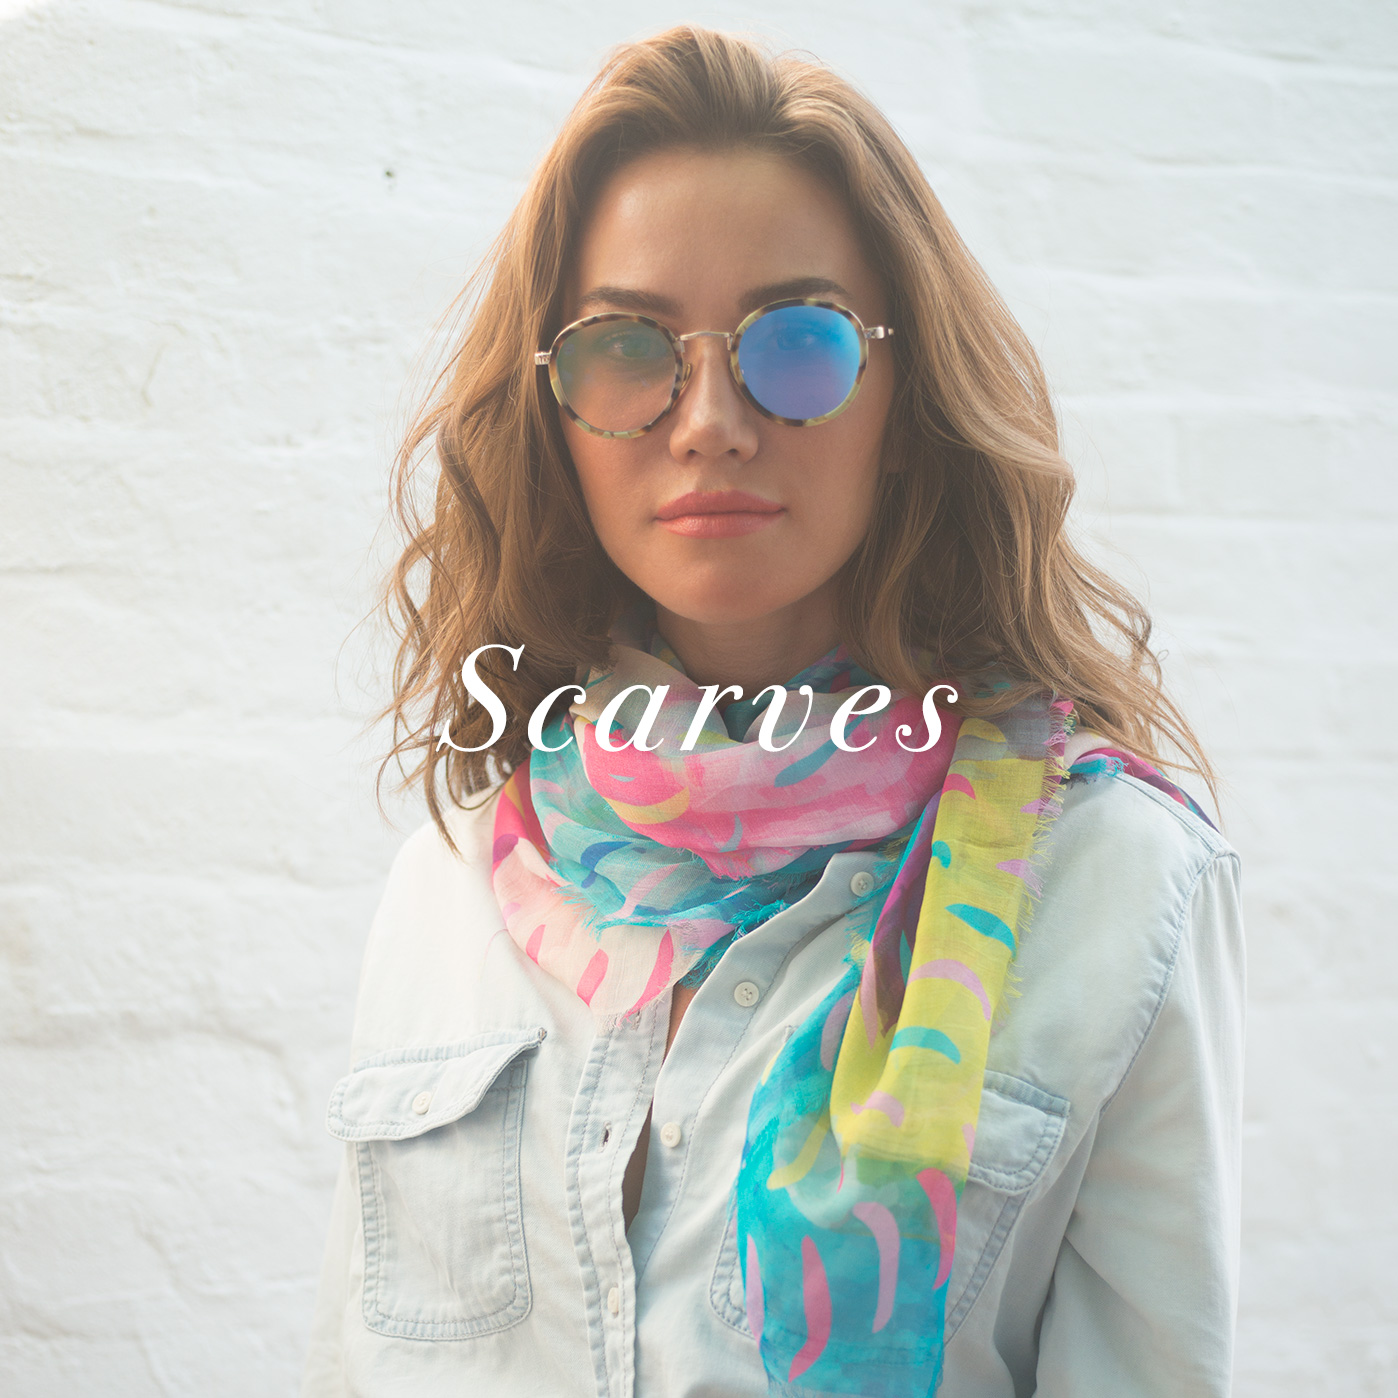 Shop scarves by Liz Nehdi